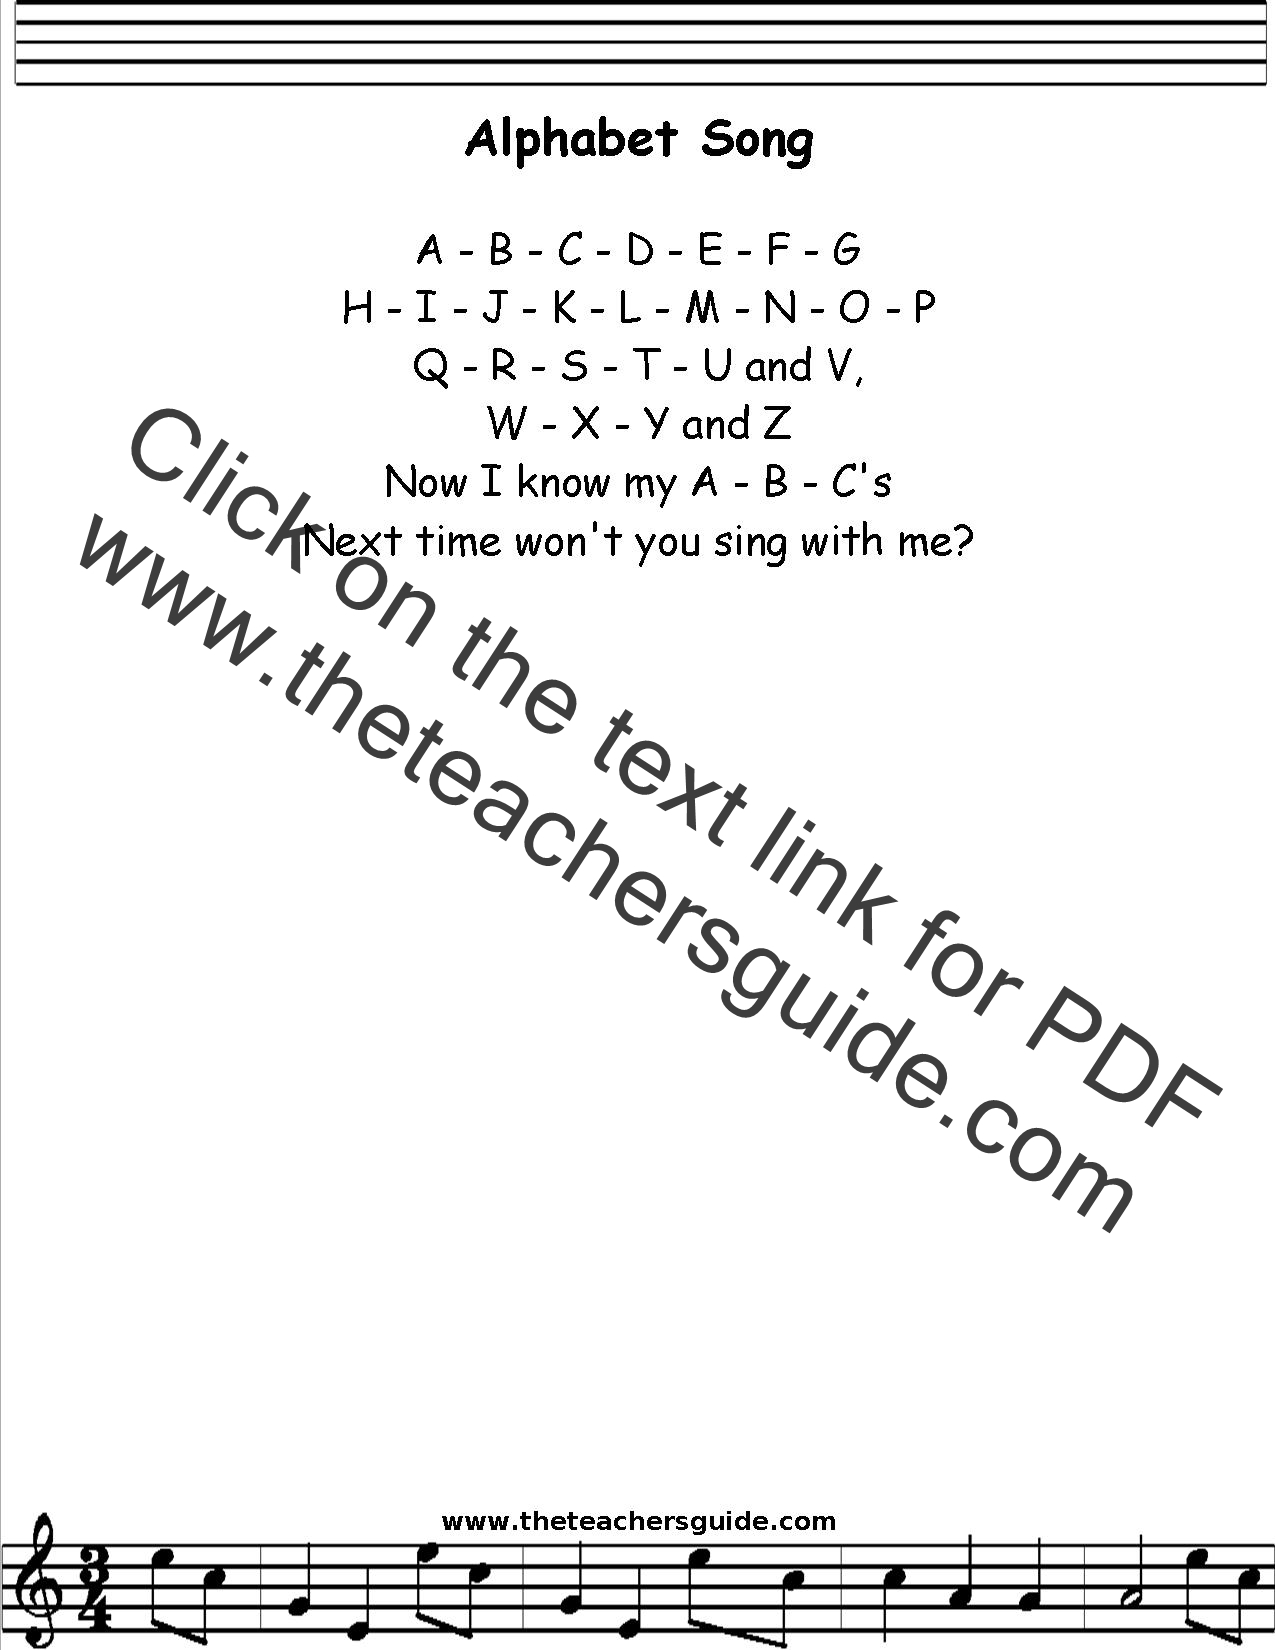 Alphabet Song Lyrics, Printout, MIDI, and Video